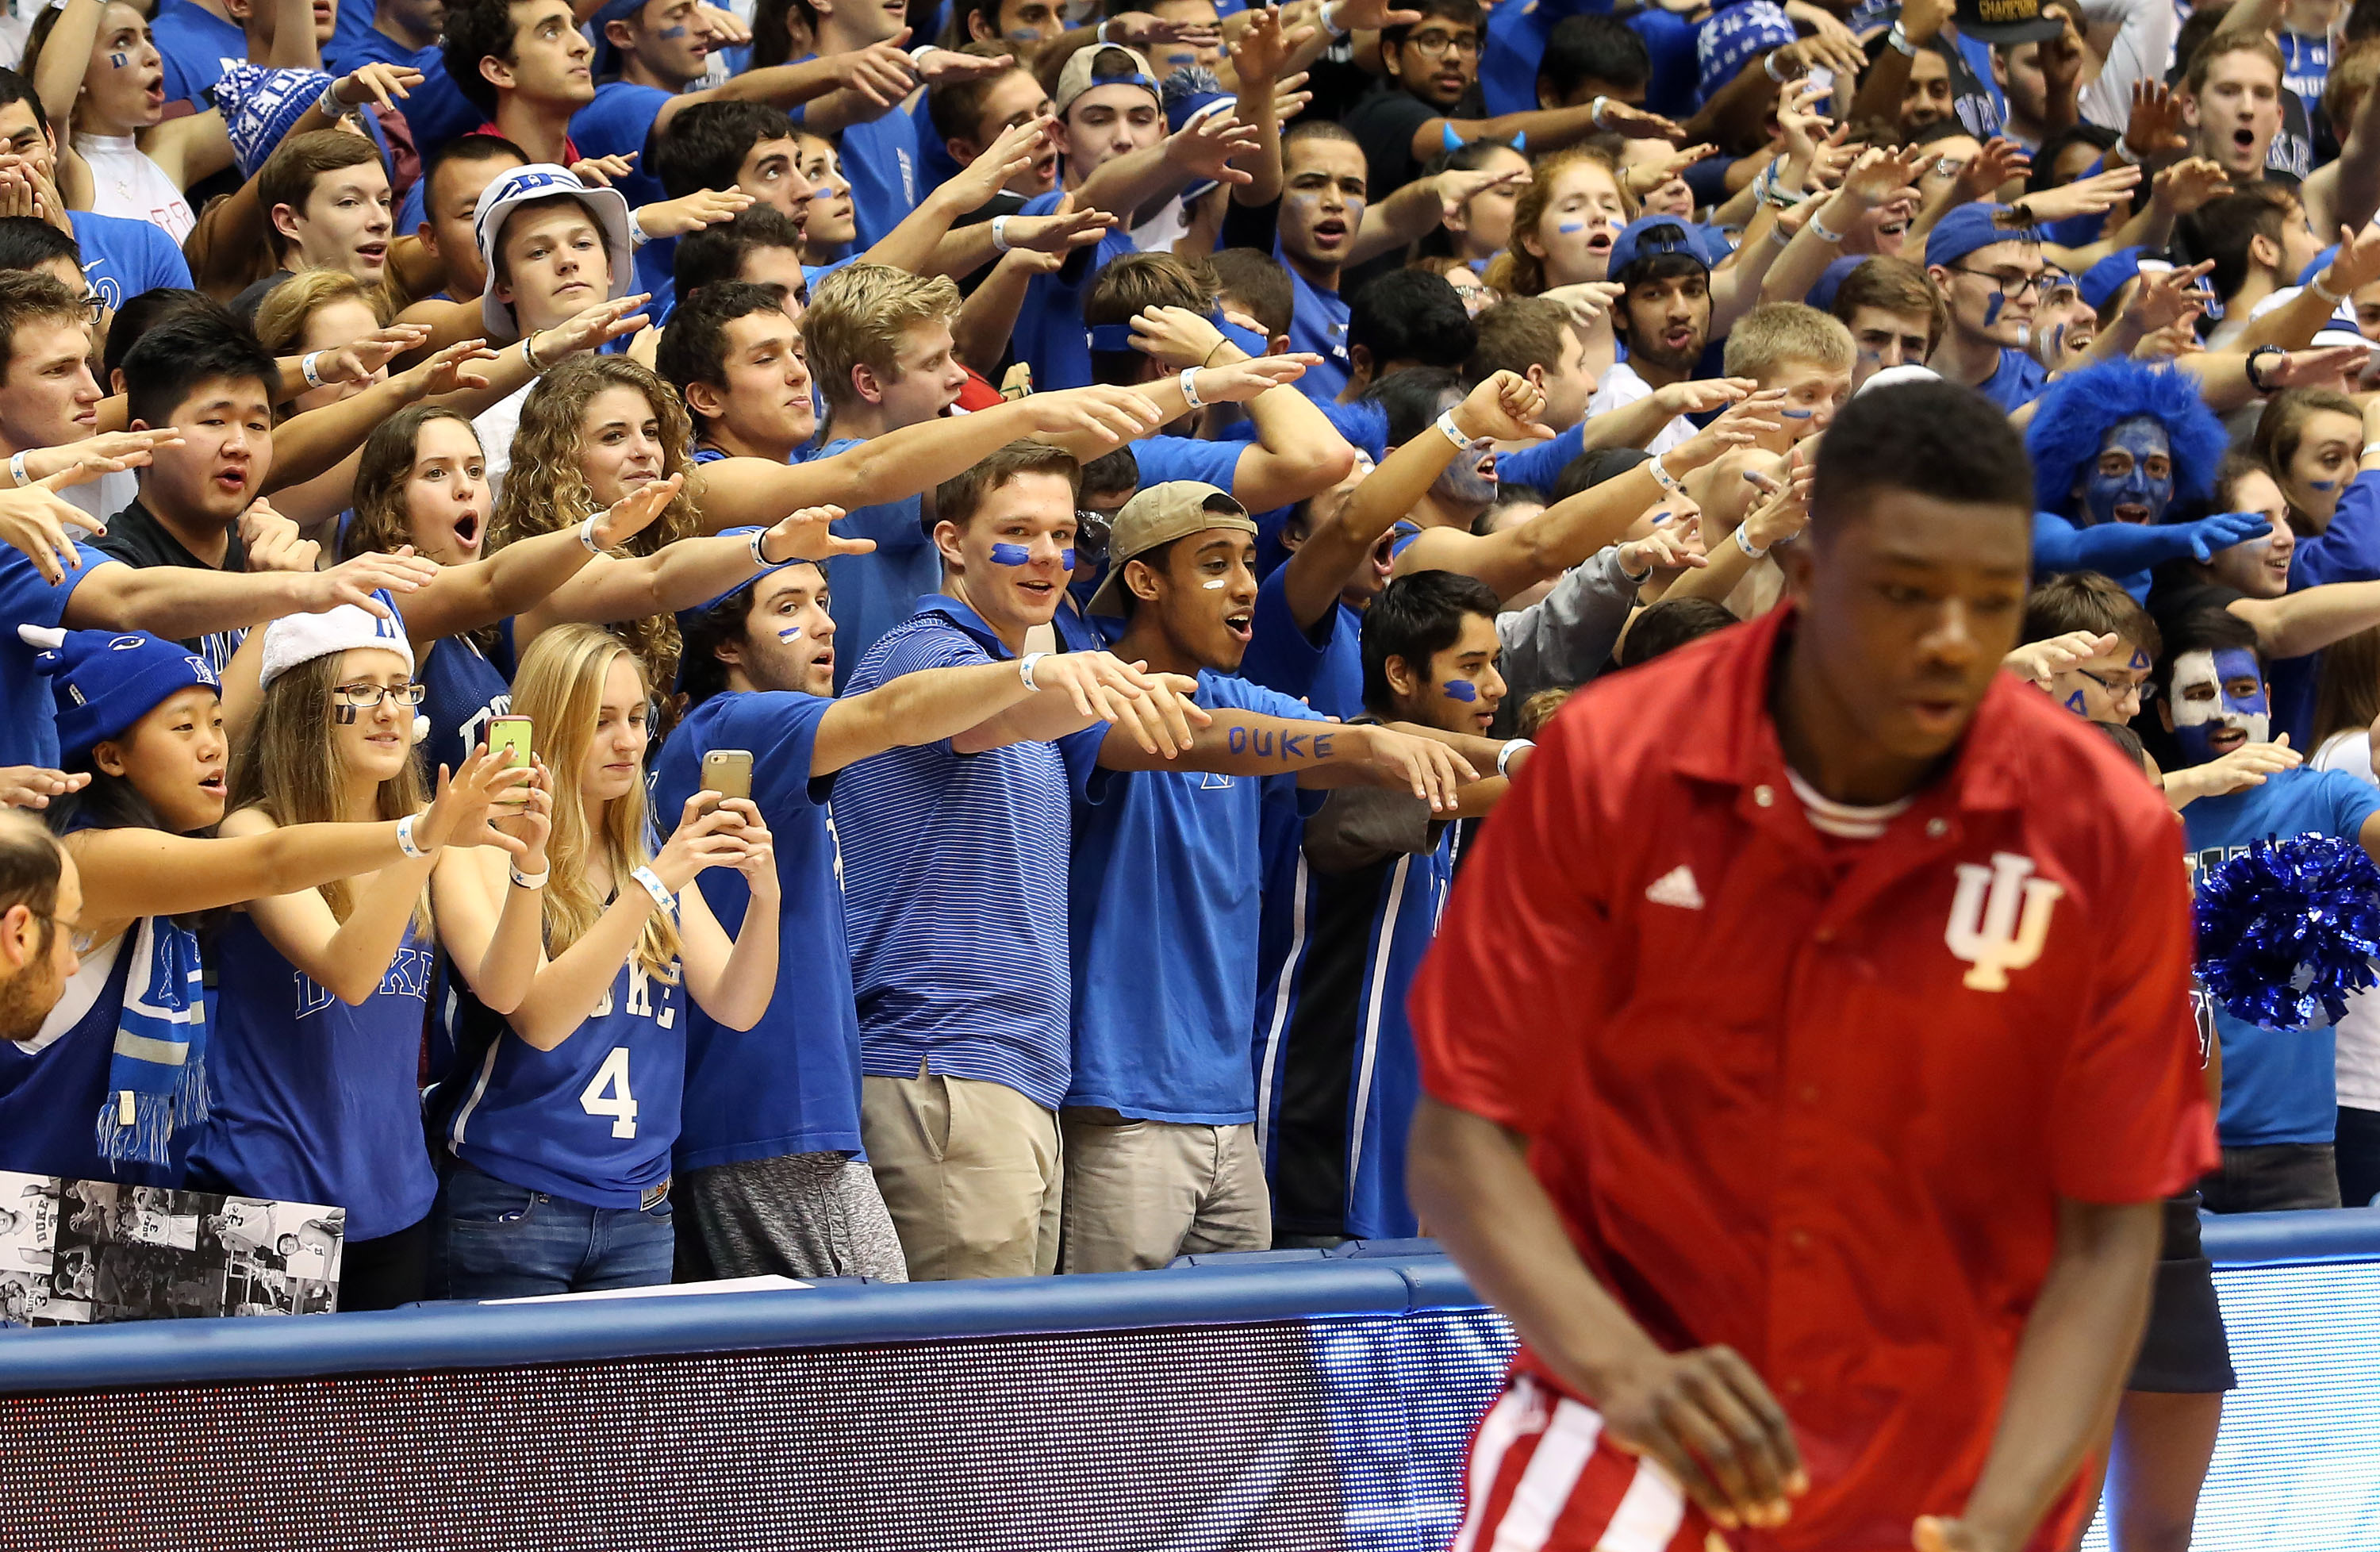 8969149-ncaa-basketball-indiana-at-duke